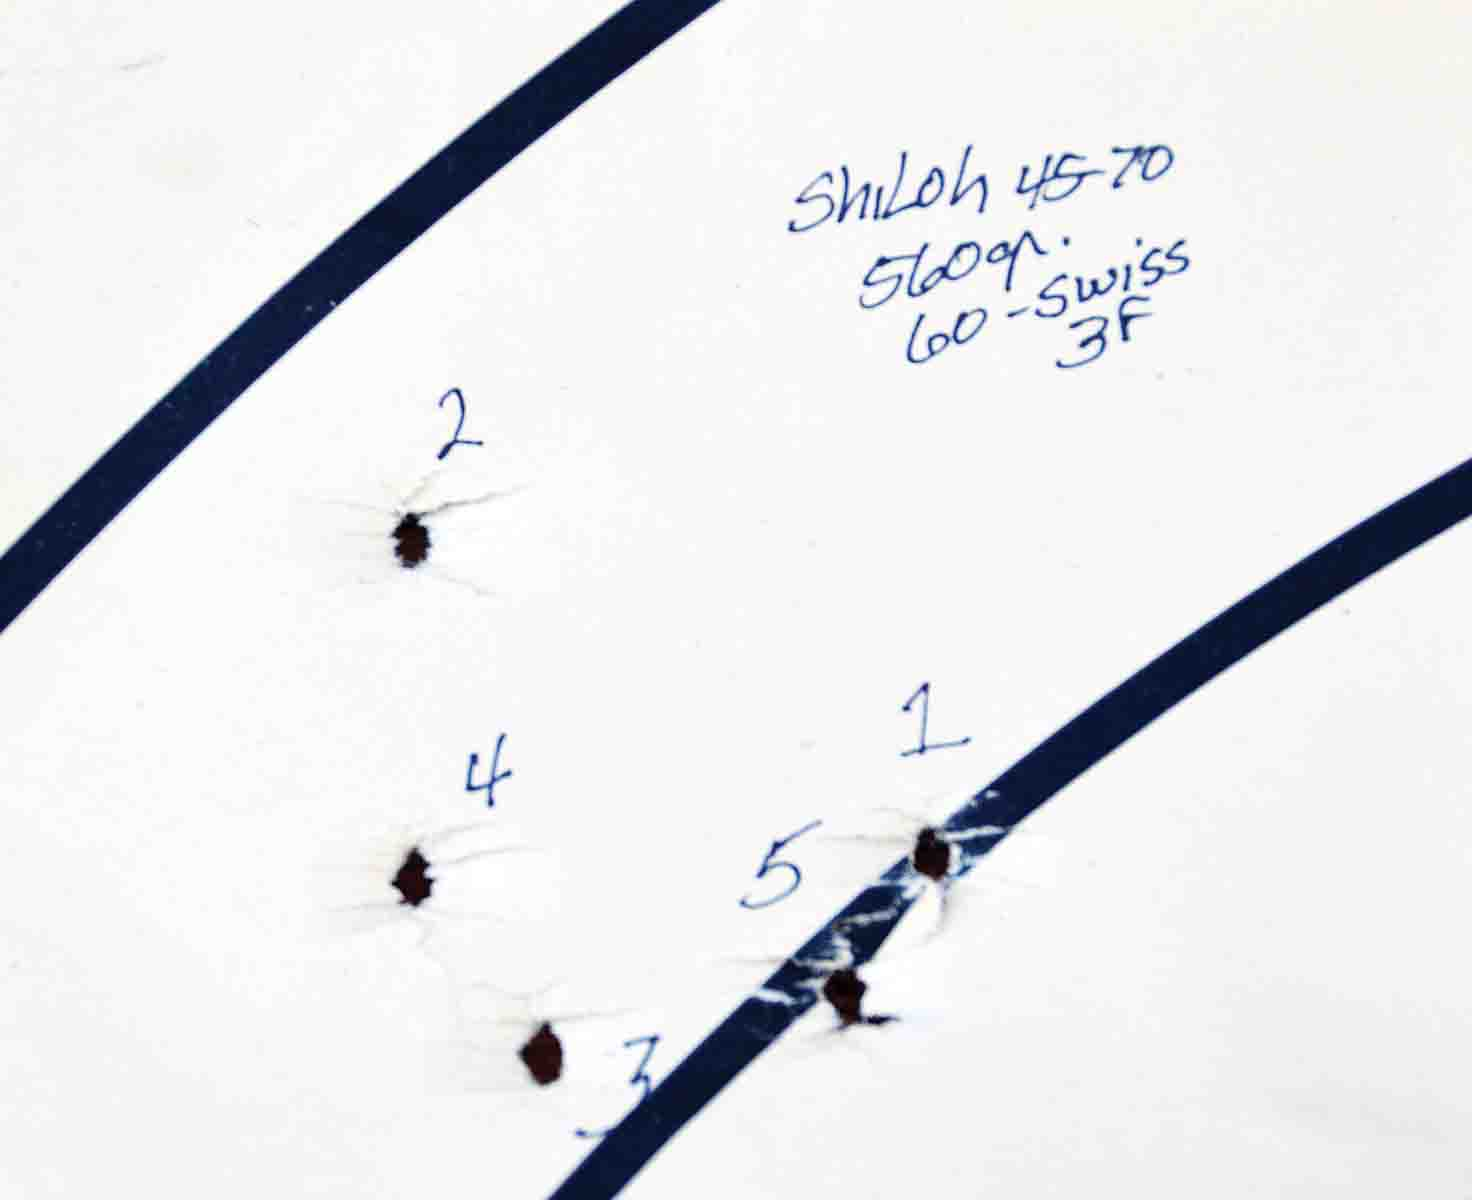 The first three shots revealed the parameters of this group while the last two fell within, or at least near, those limits. This group measures 2.5 inches and was fired at 200 yards.